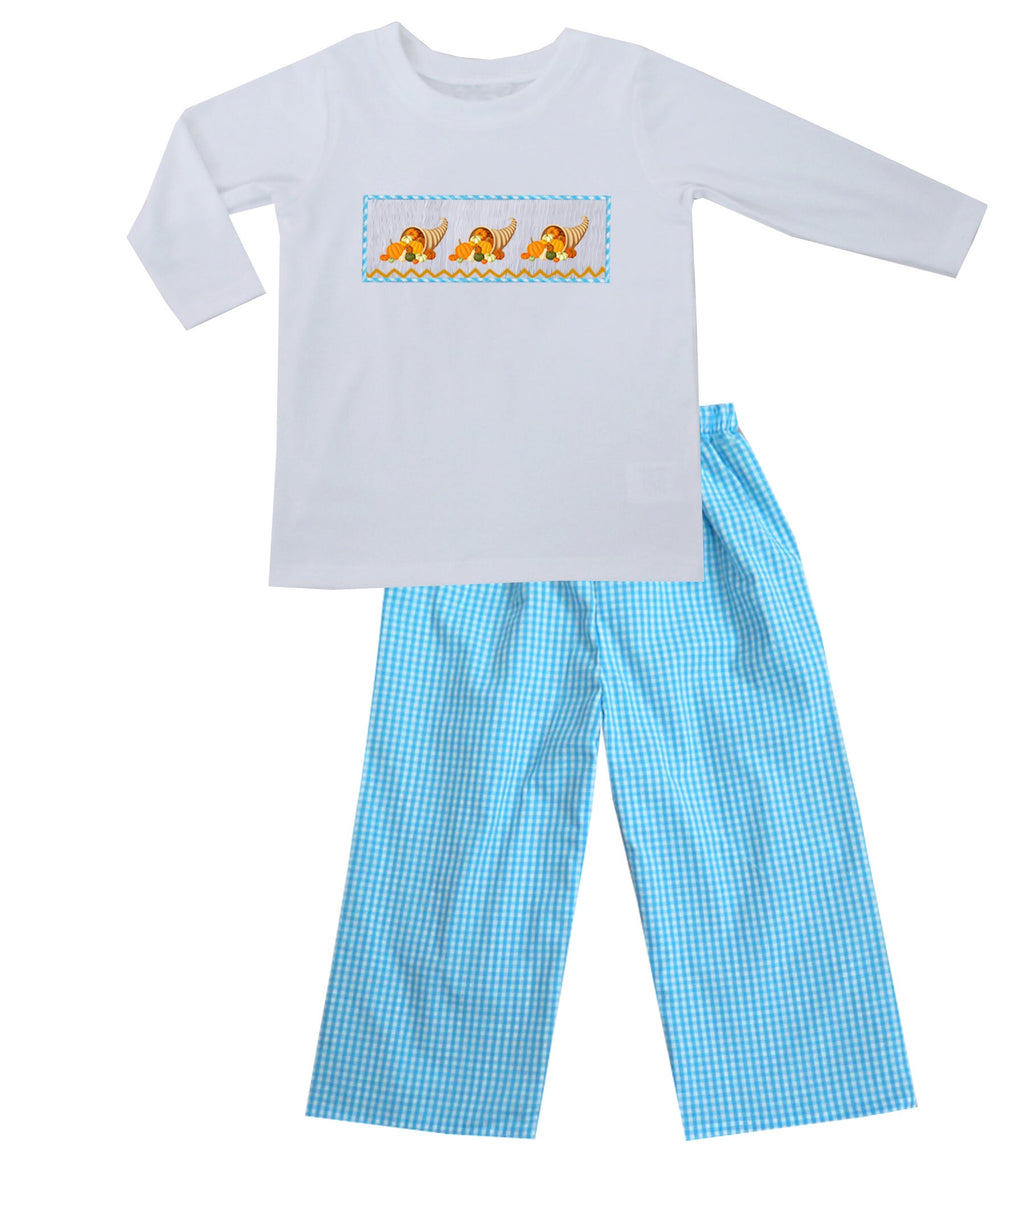 2019 Cornucopia Boy Pants Set